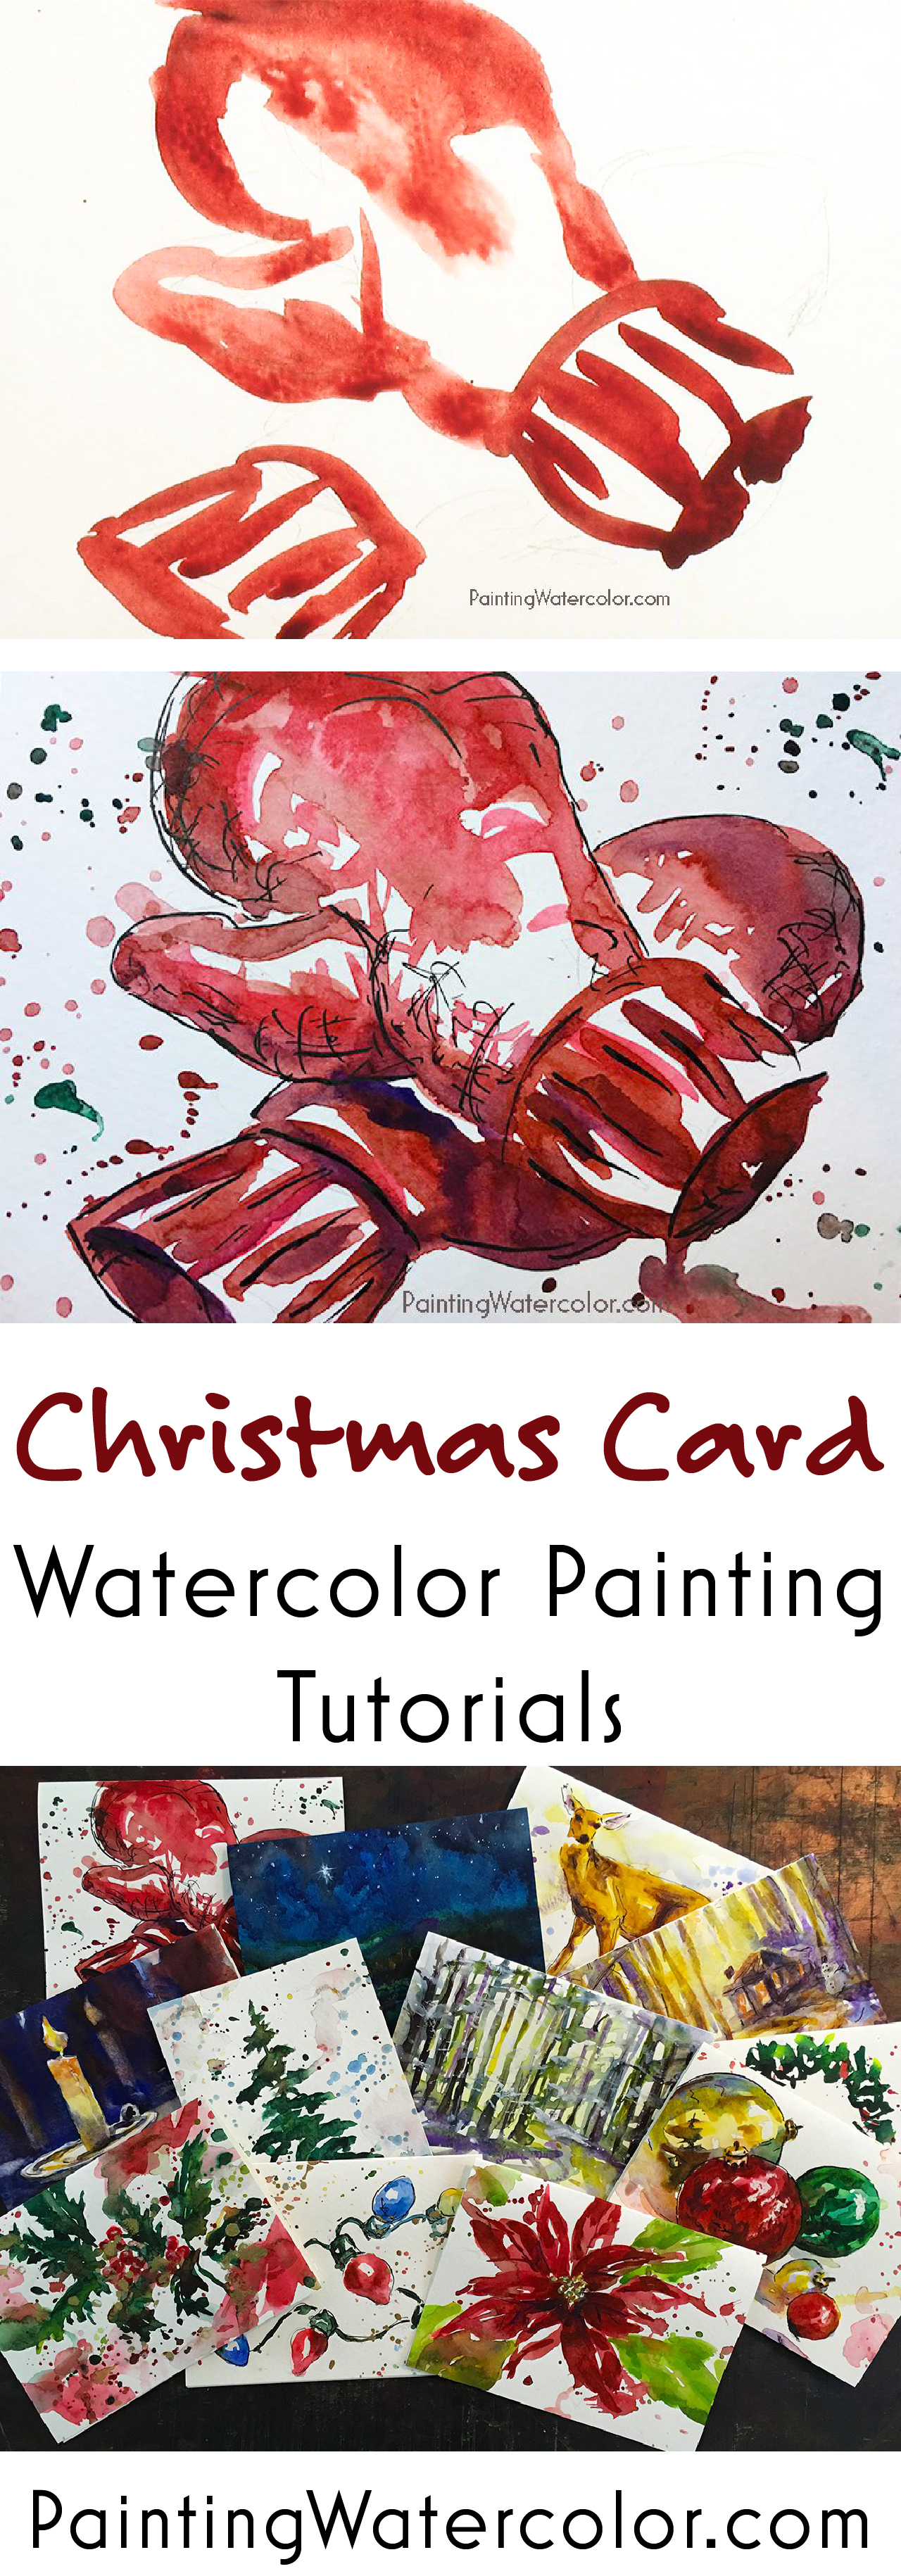 Paint beautiful Christmas cards for your family and friends! I show you step by step how to paint warm and cozy mittens on a Christmas card.